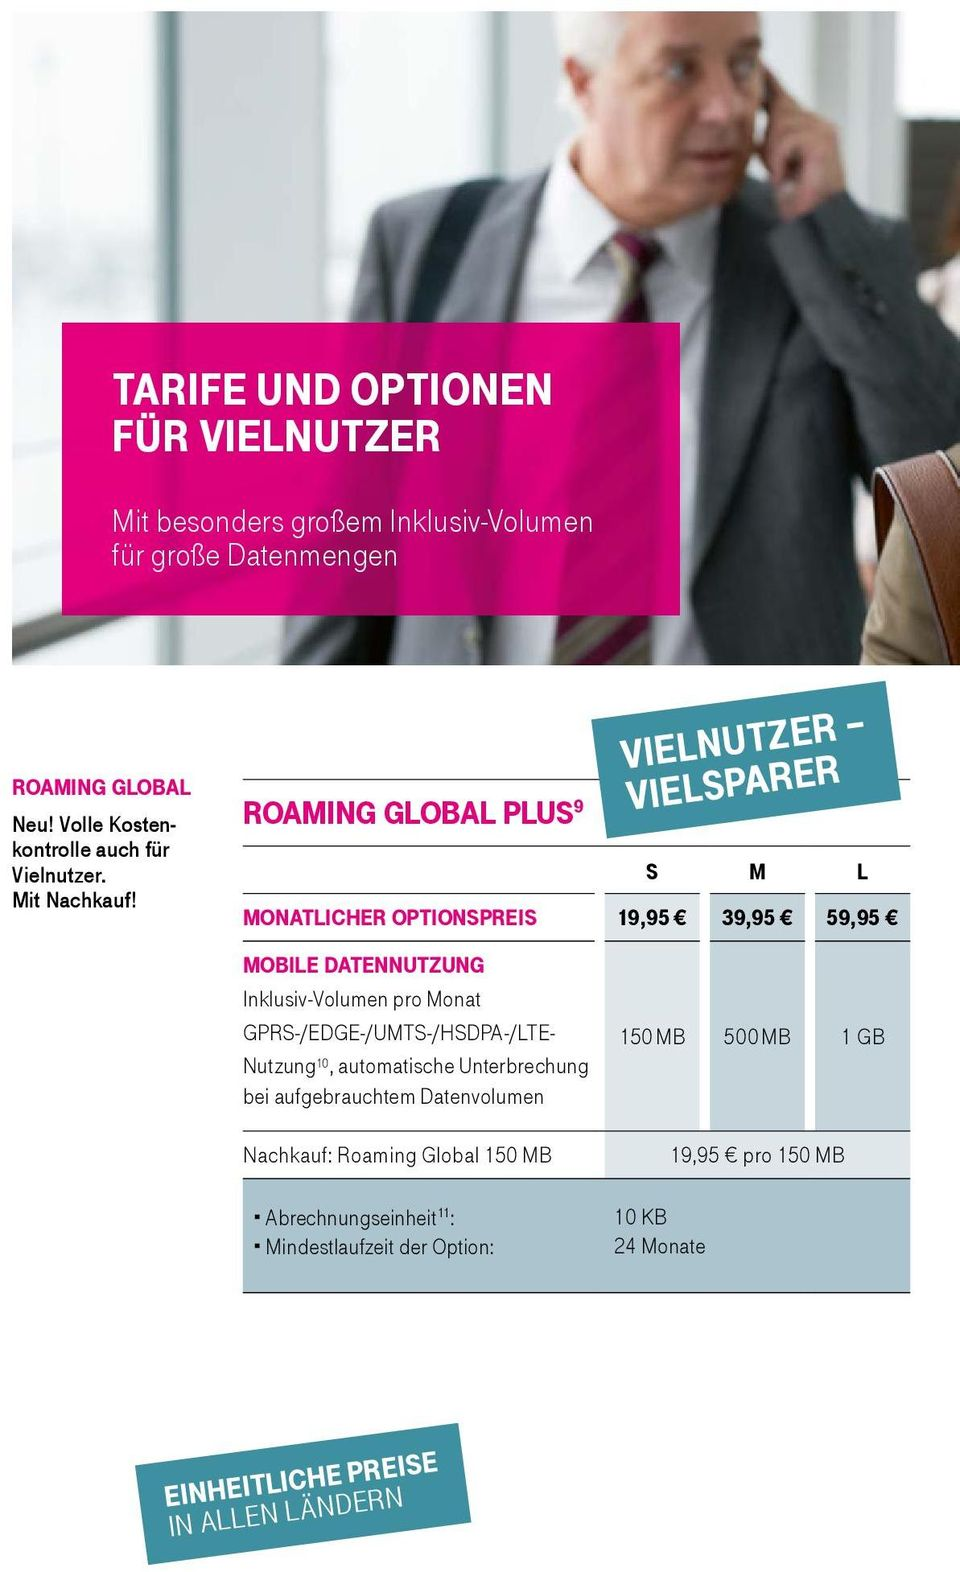 roaming global plus 9 VielNutzer VielSparer S M L monatlicher optionspreis 19,95 39,95 59,95 mobile datennutzung Inklusiv-Volumen pro Monat